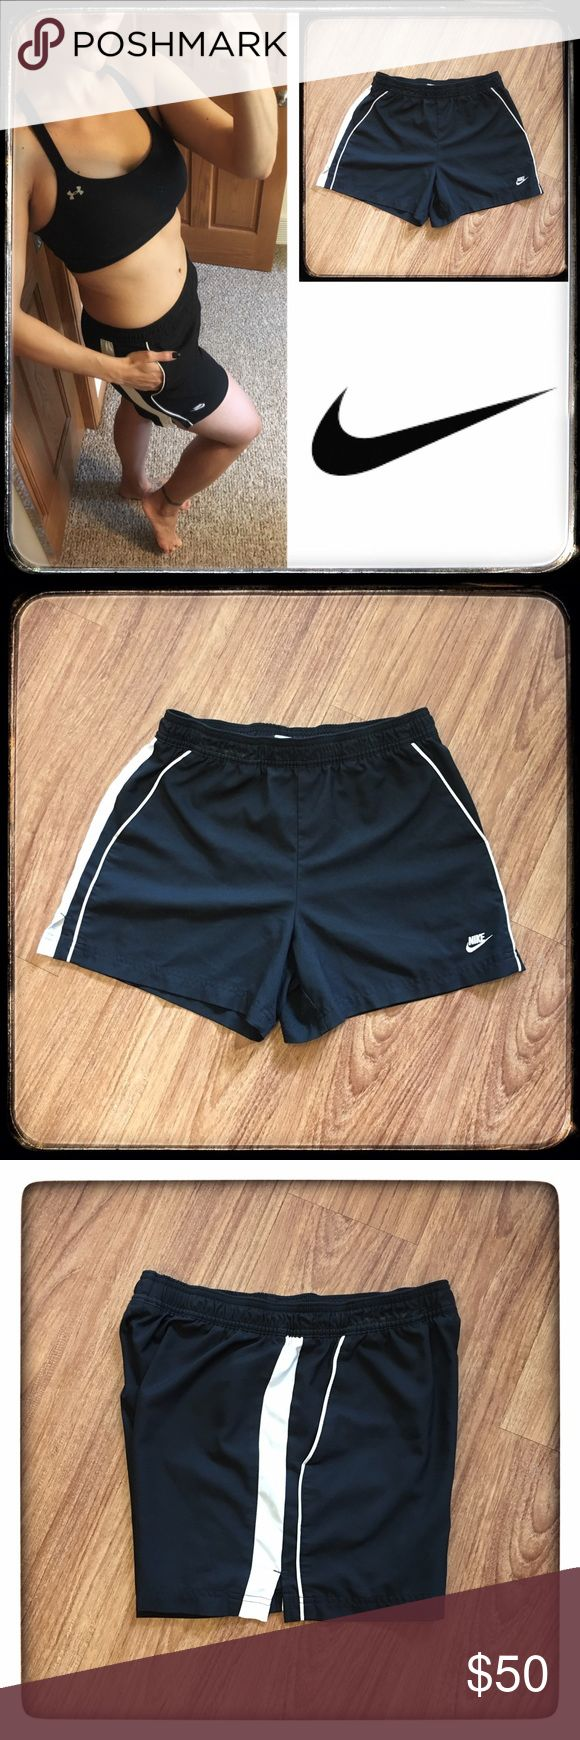 """Nike women's black & white shorts w/ pockets 📦Same day shipping (as long as P.O. is open for business). ❤ Measurements are approximate. Descriptions are accurate to the best of my knowledge.  These classic black and white track shorts from Nike feature the Nike logo on the front with white piping and a white stripe down each side as well as 2 front pockets. 100% polyester. Elastic waist (drawstring is missing). Flat measurements: 13.5"""" across waist, 10.75"""" rise, 4""""inseam. Excellent…"""